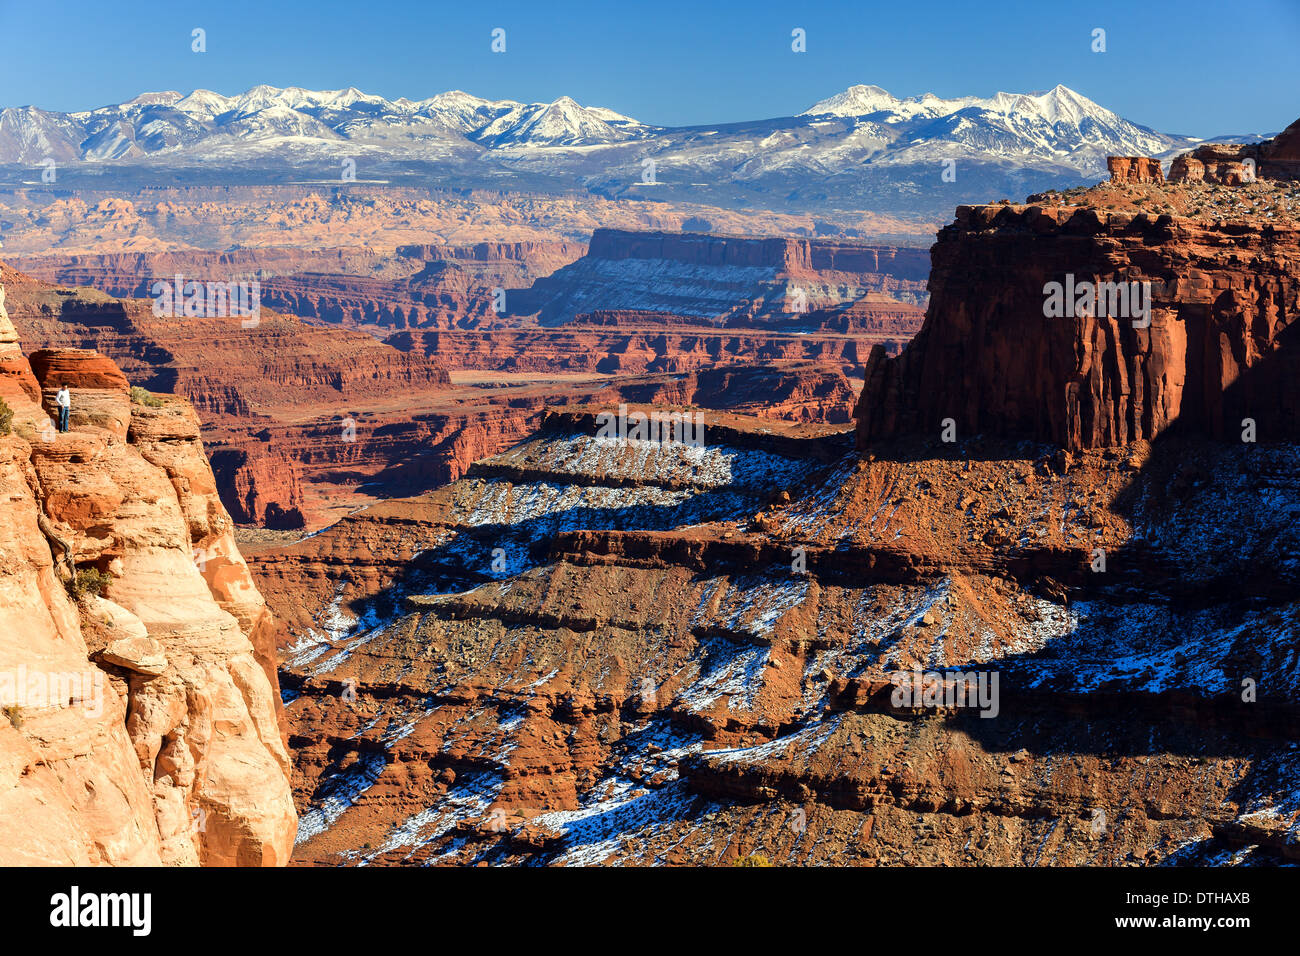 Canyonlands National Park with the Lasal Mountains in the background, Utah - USA - Stock Image